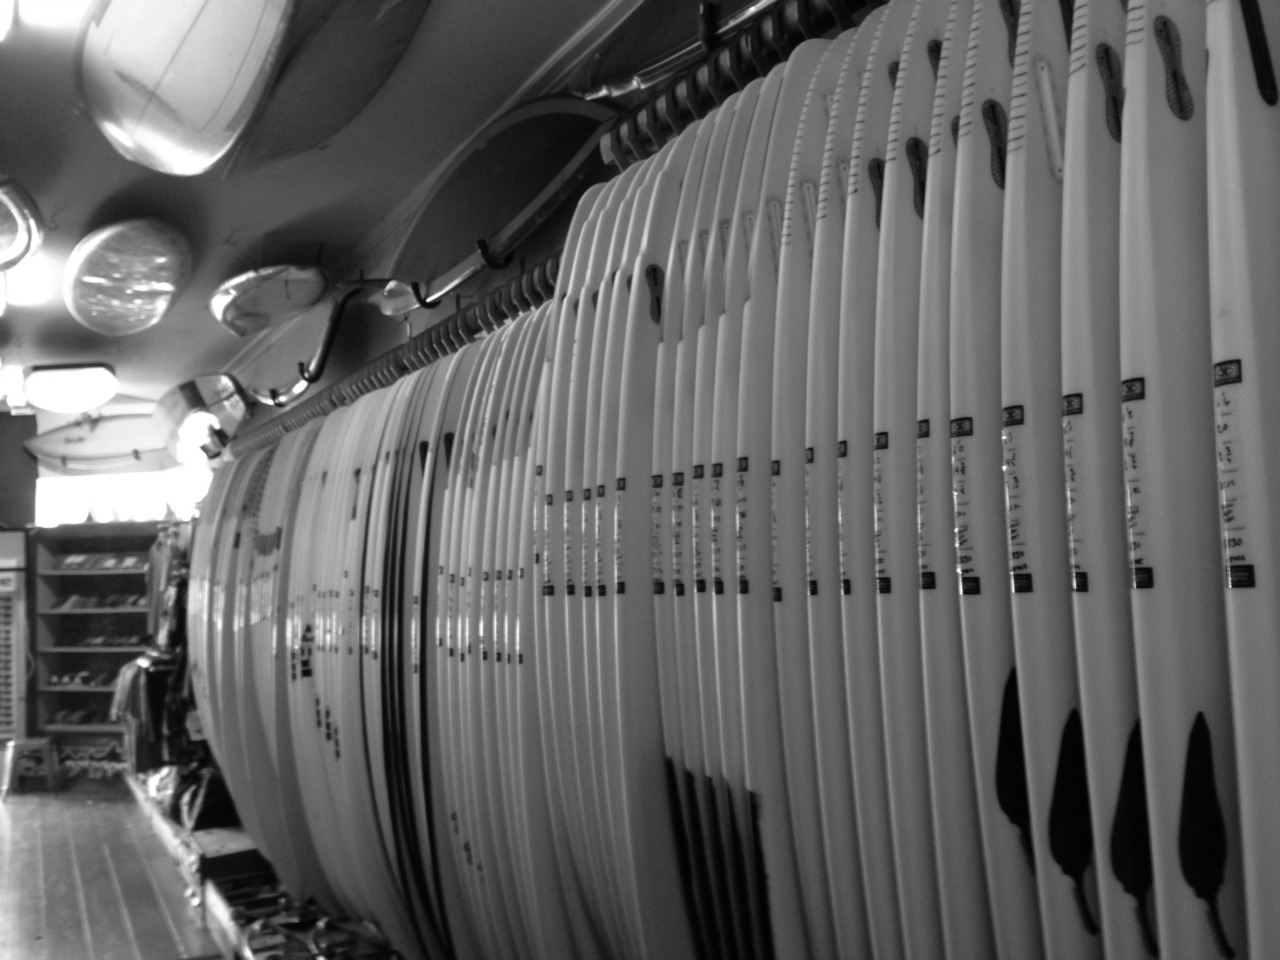 Clearance Surfboards on our racks